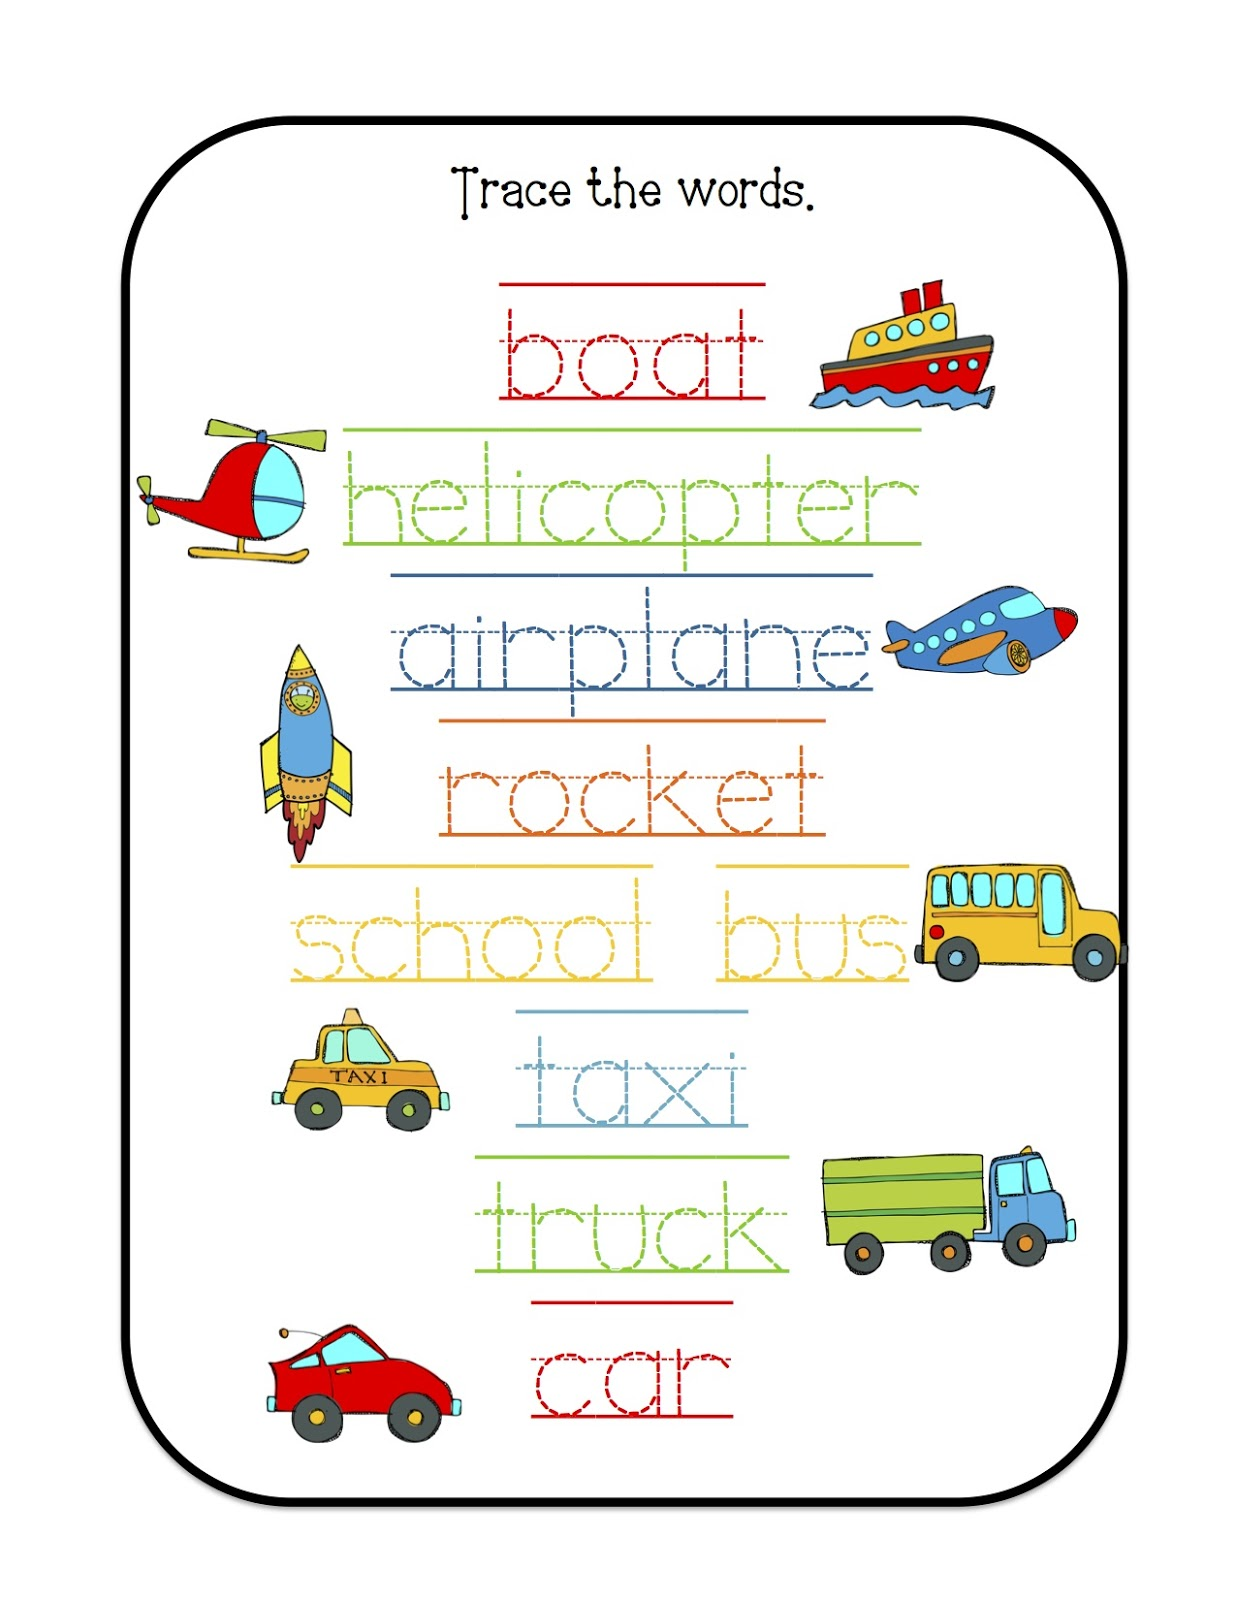 Year Old Pattern Worksheets | Free Printable Math Worksheets - Mibb ...